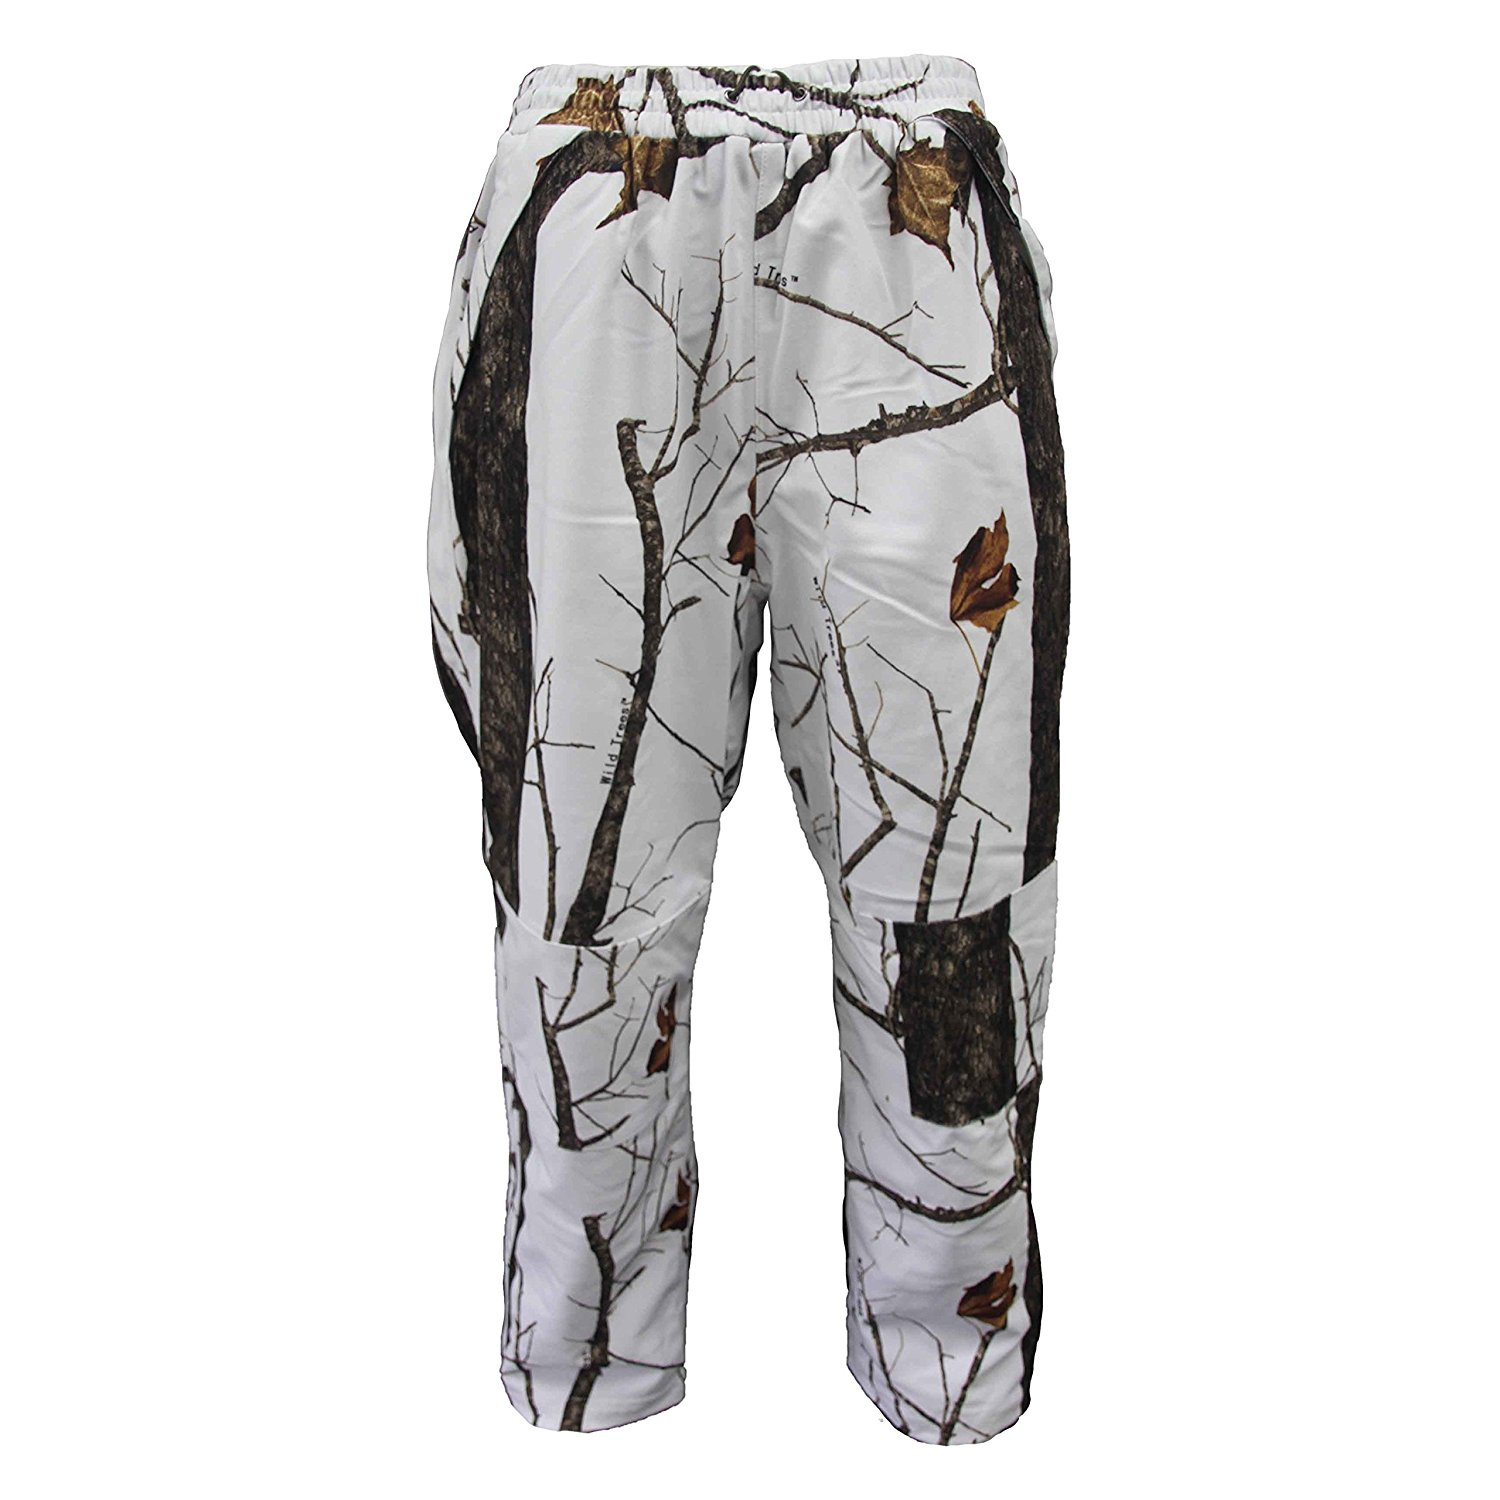 NEW Wildfowler Outfitter Men's Waterproof Pants, Wild Tree Snow, 2X-Large